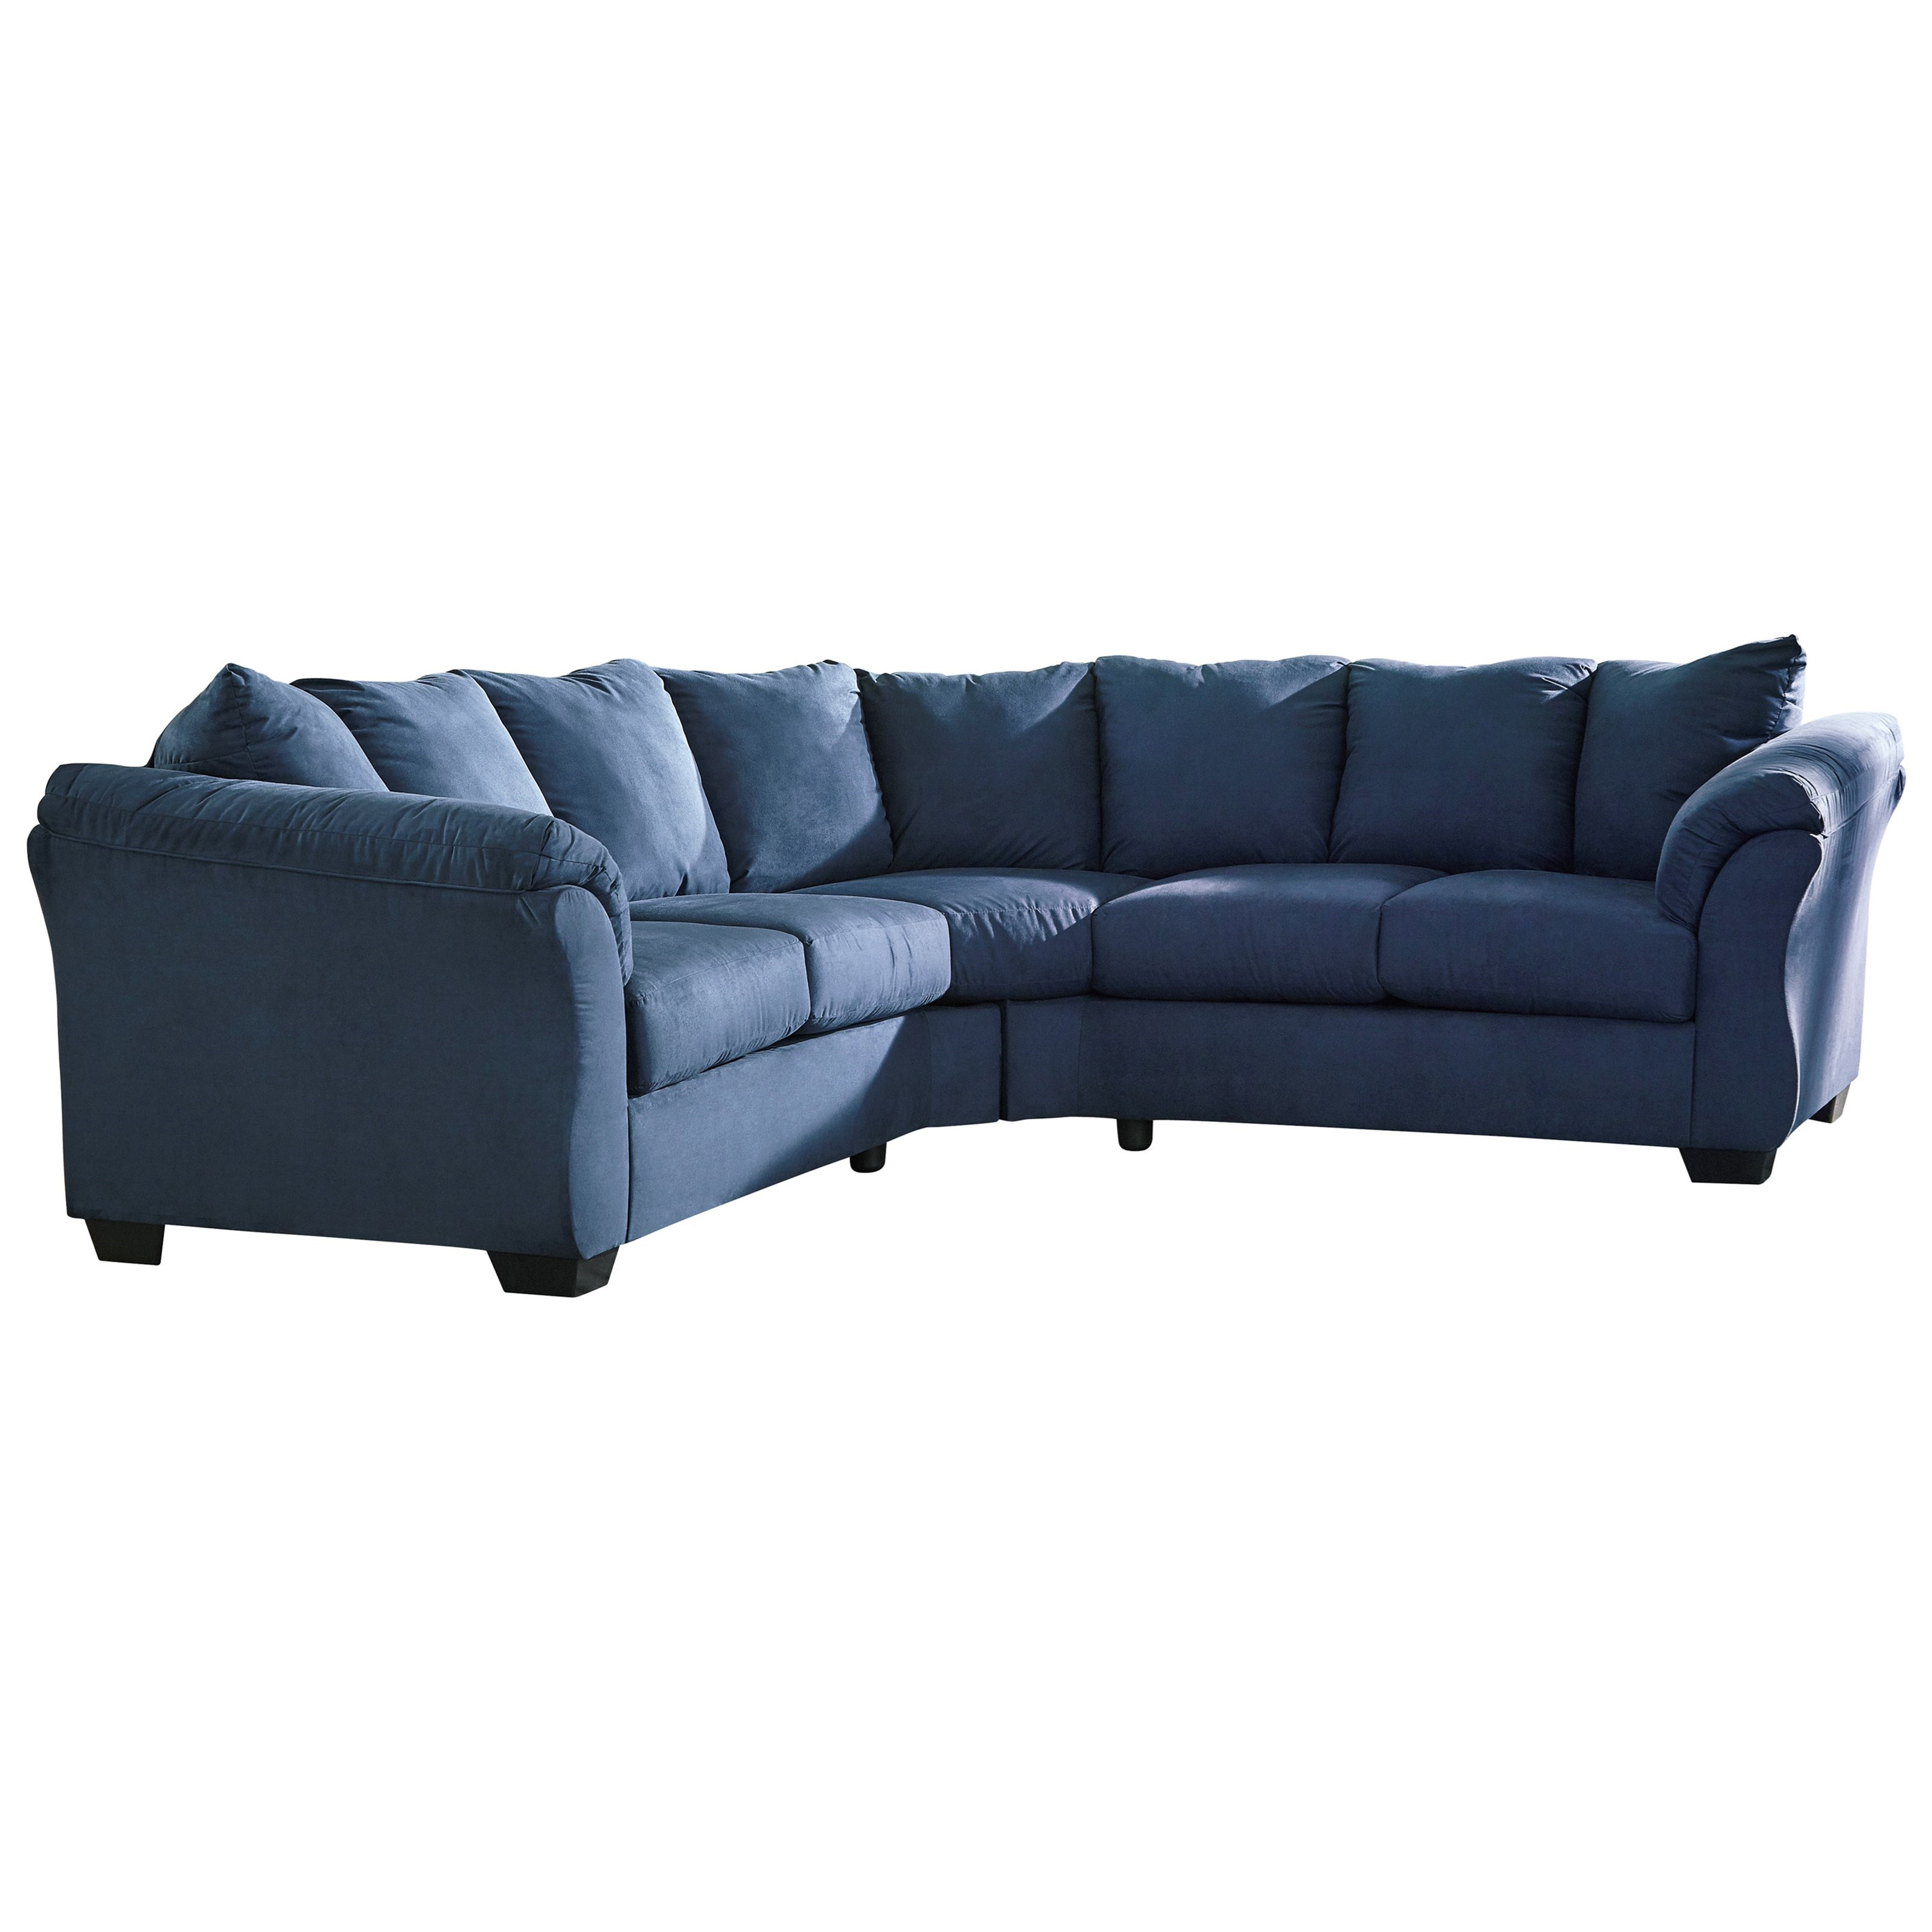 Signature Design by Ashley Darcy Blue Contemporary Sectional